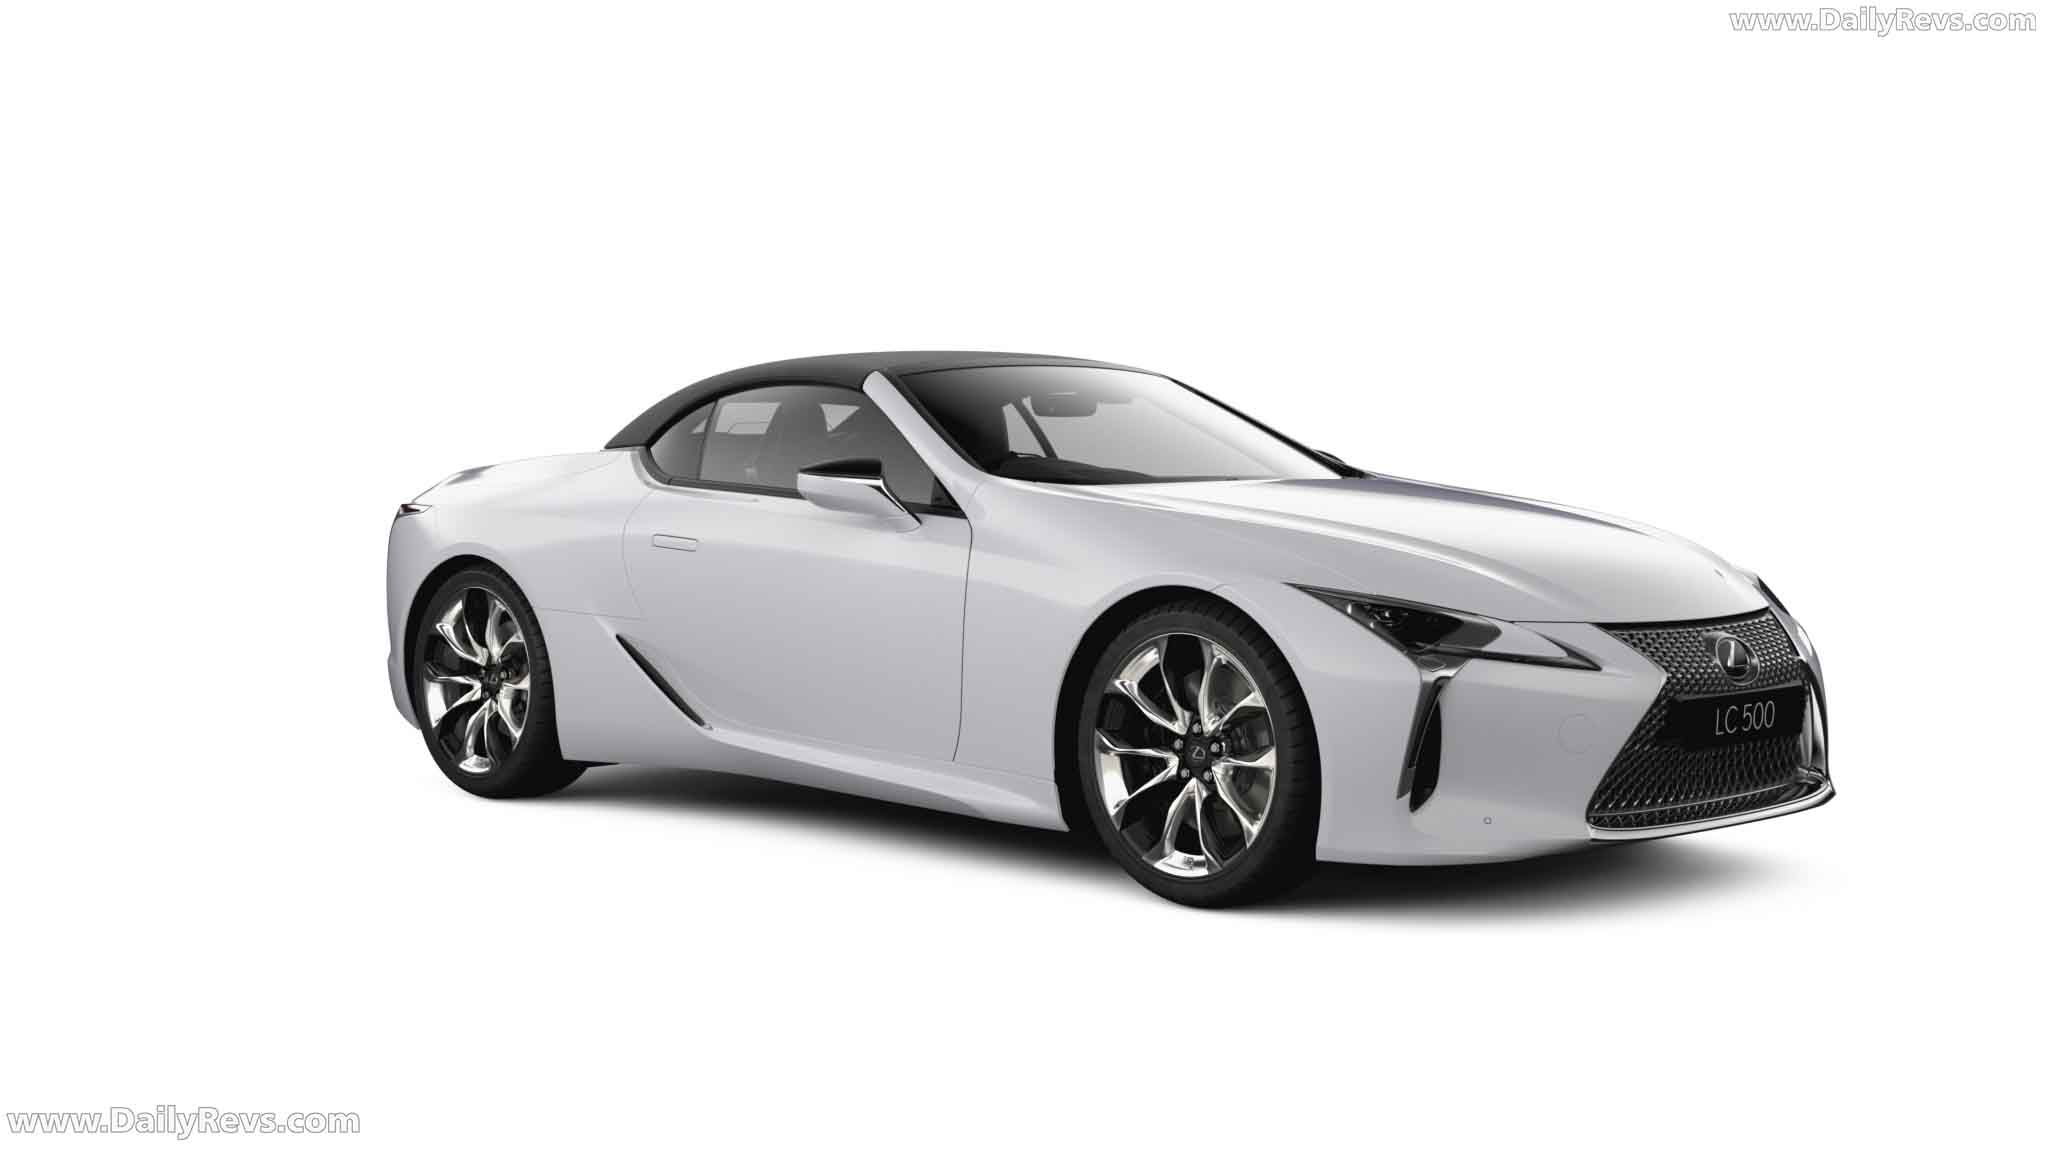 2021 Lexus LC 500 Convertible full